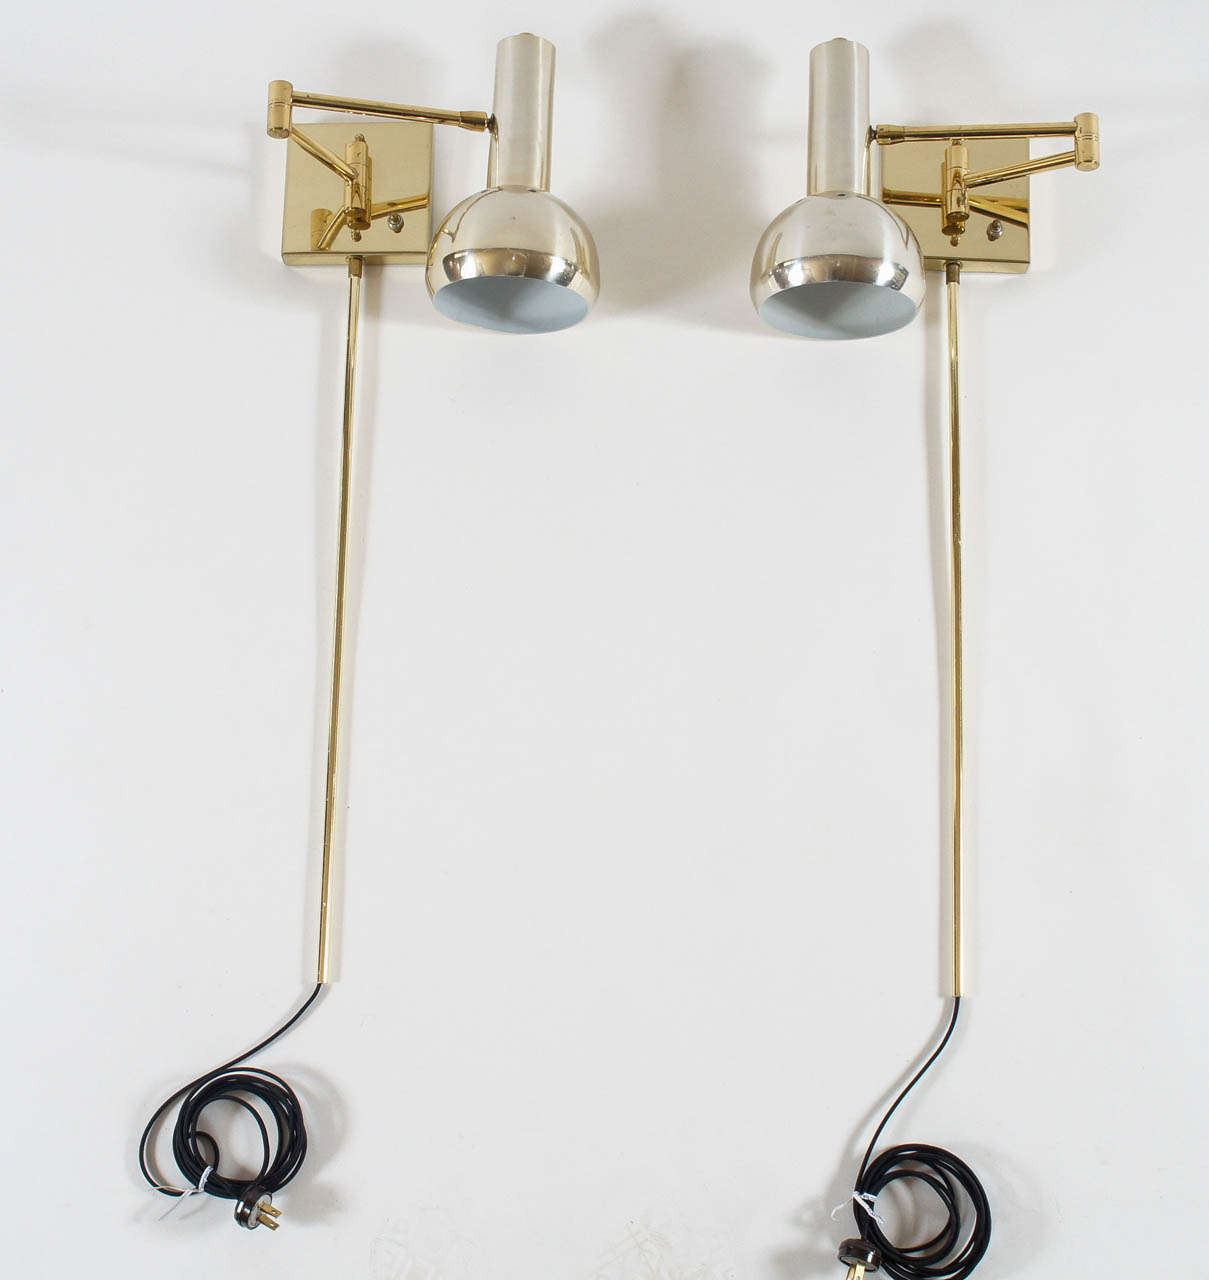 Wall Lamps Swing Arm Brass : Vintage Brass Swing-Arm Wall Mount Reading Lamps - Italy, c. 1970 at 1stdibs